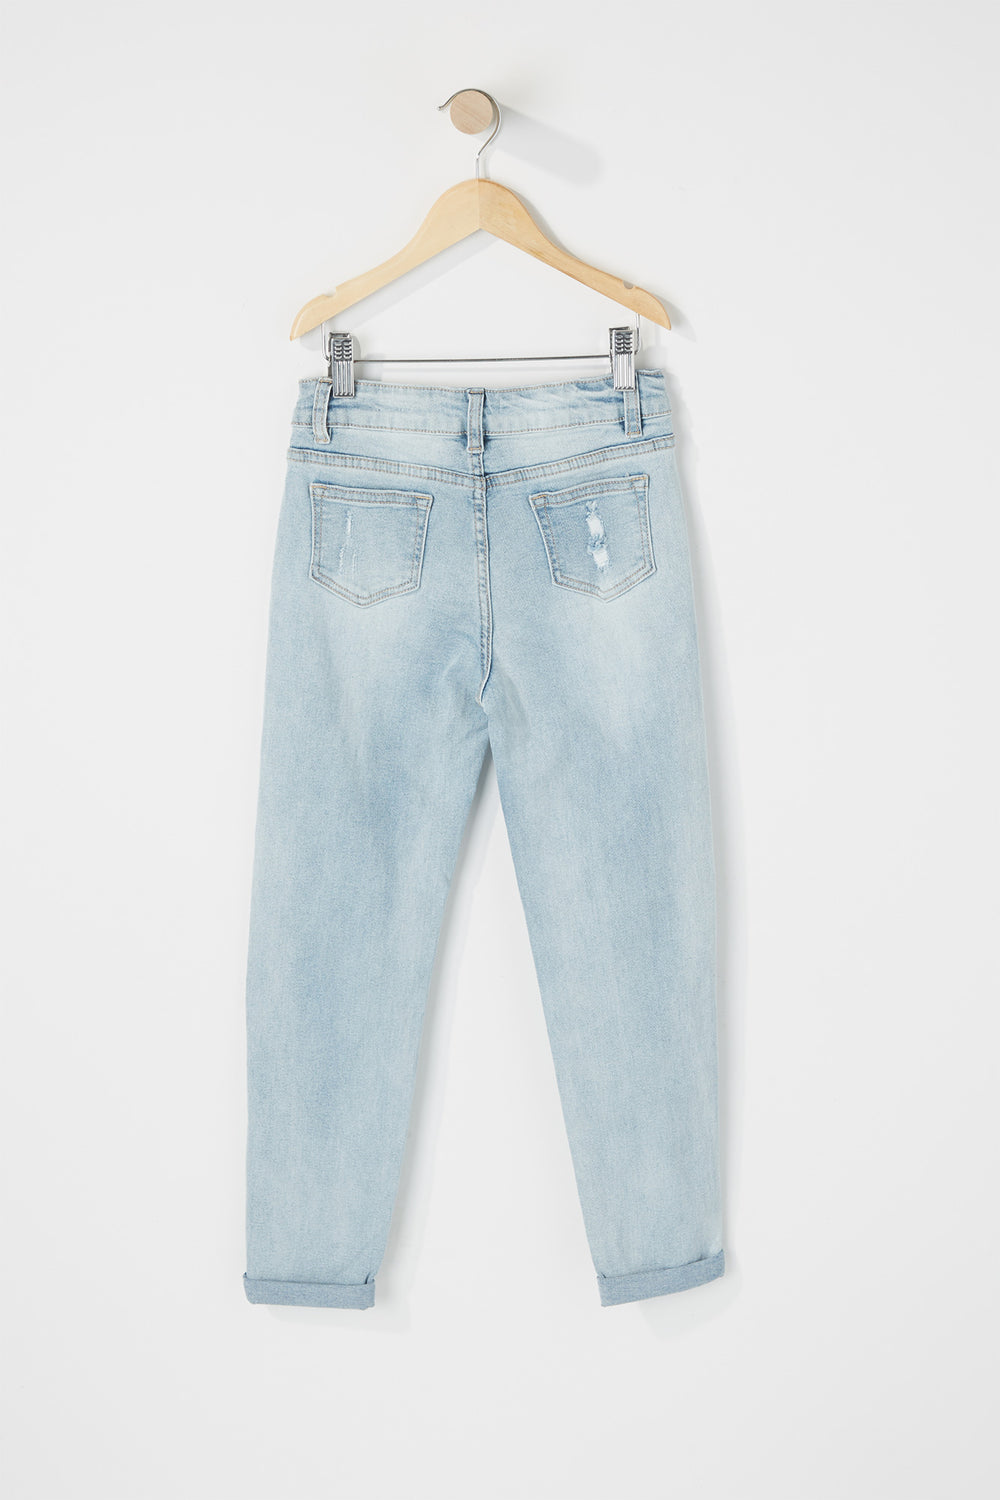 Girls High-Rise Distressed Raw Girlfriend Jean Light Denim Blue